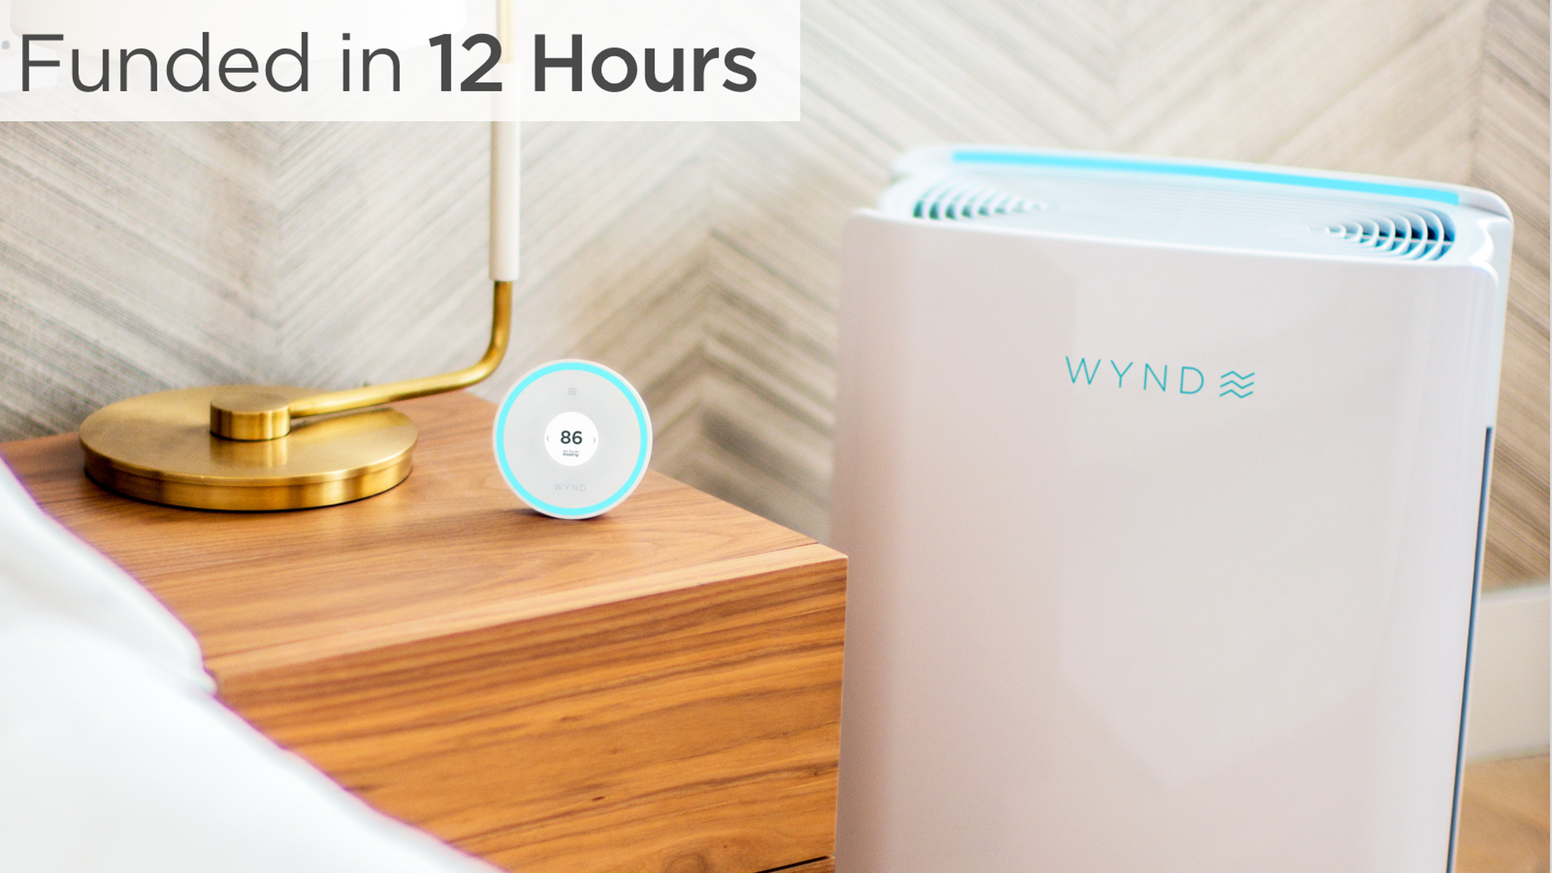 Wynd Technologies, Inc. is raising funds for Wynd Halo